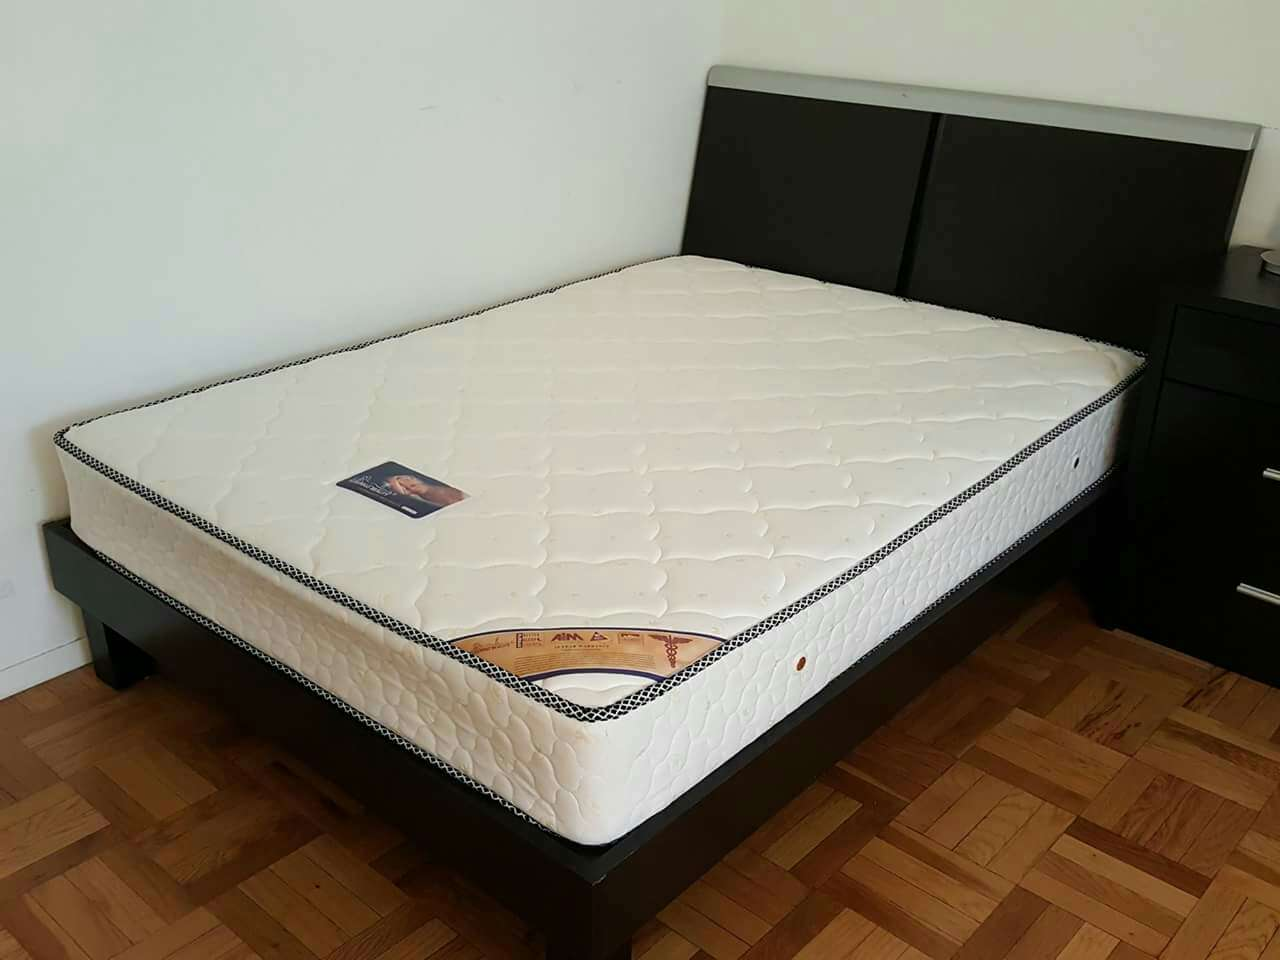 letgo Full sized mattress frame in Roosevelt Island NY